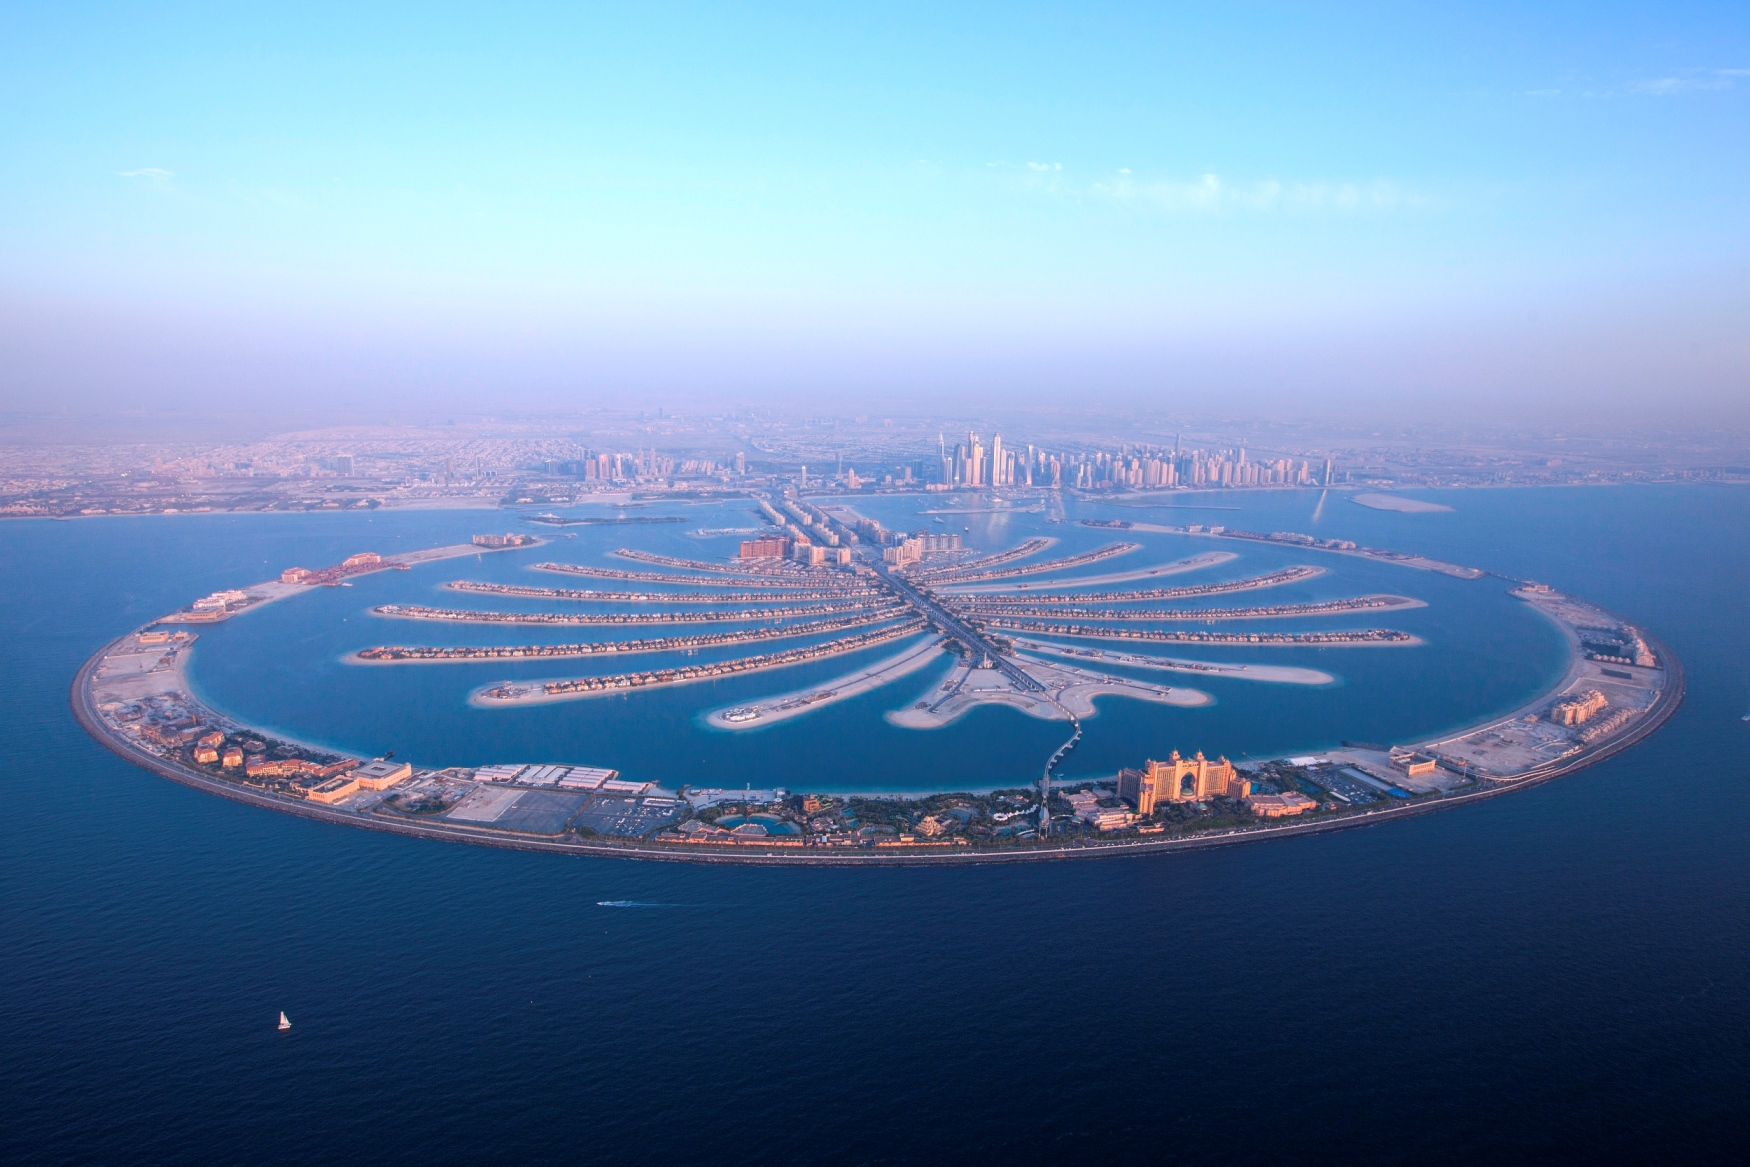 palm jumeirah from the front